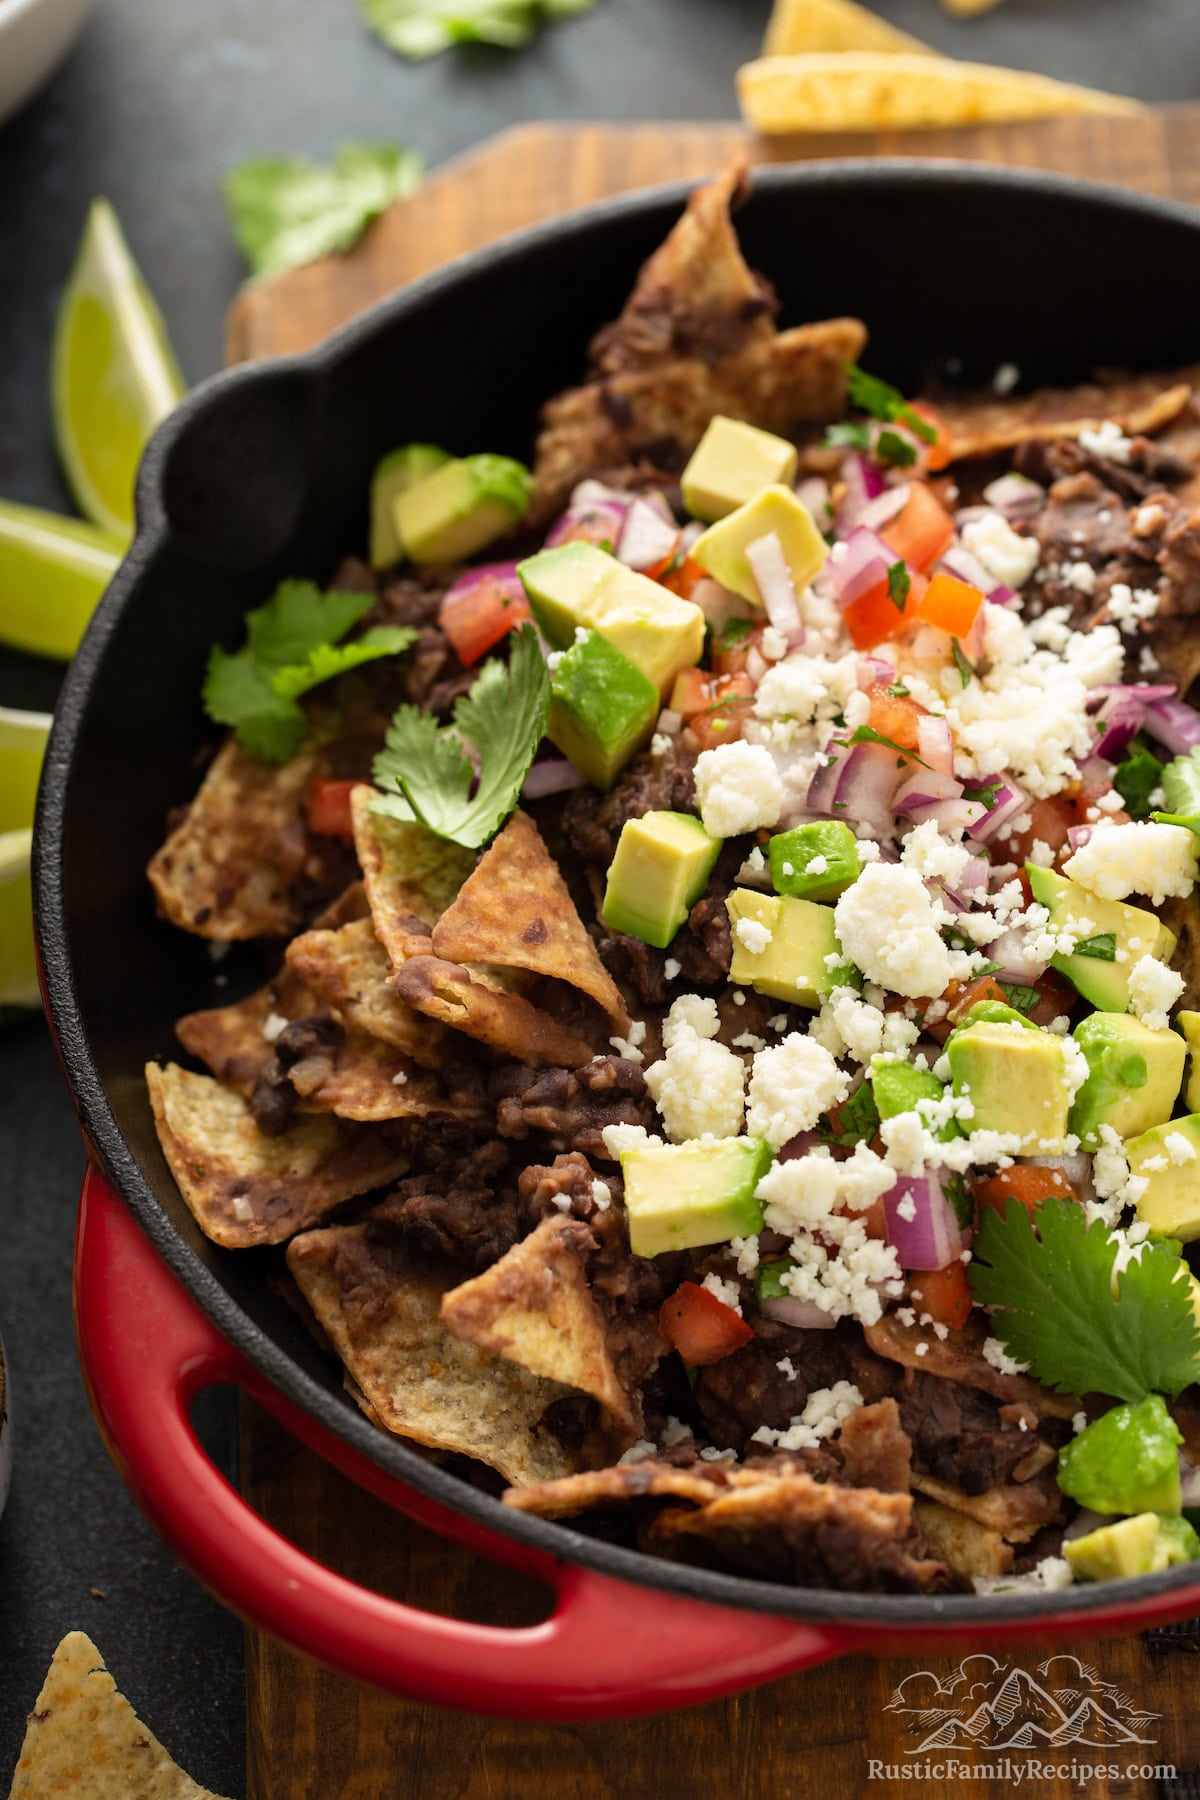 Black bean chilaquiles in a red pan with avocado and cheese